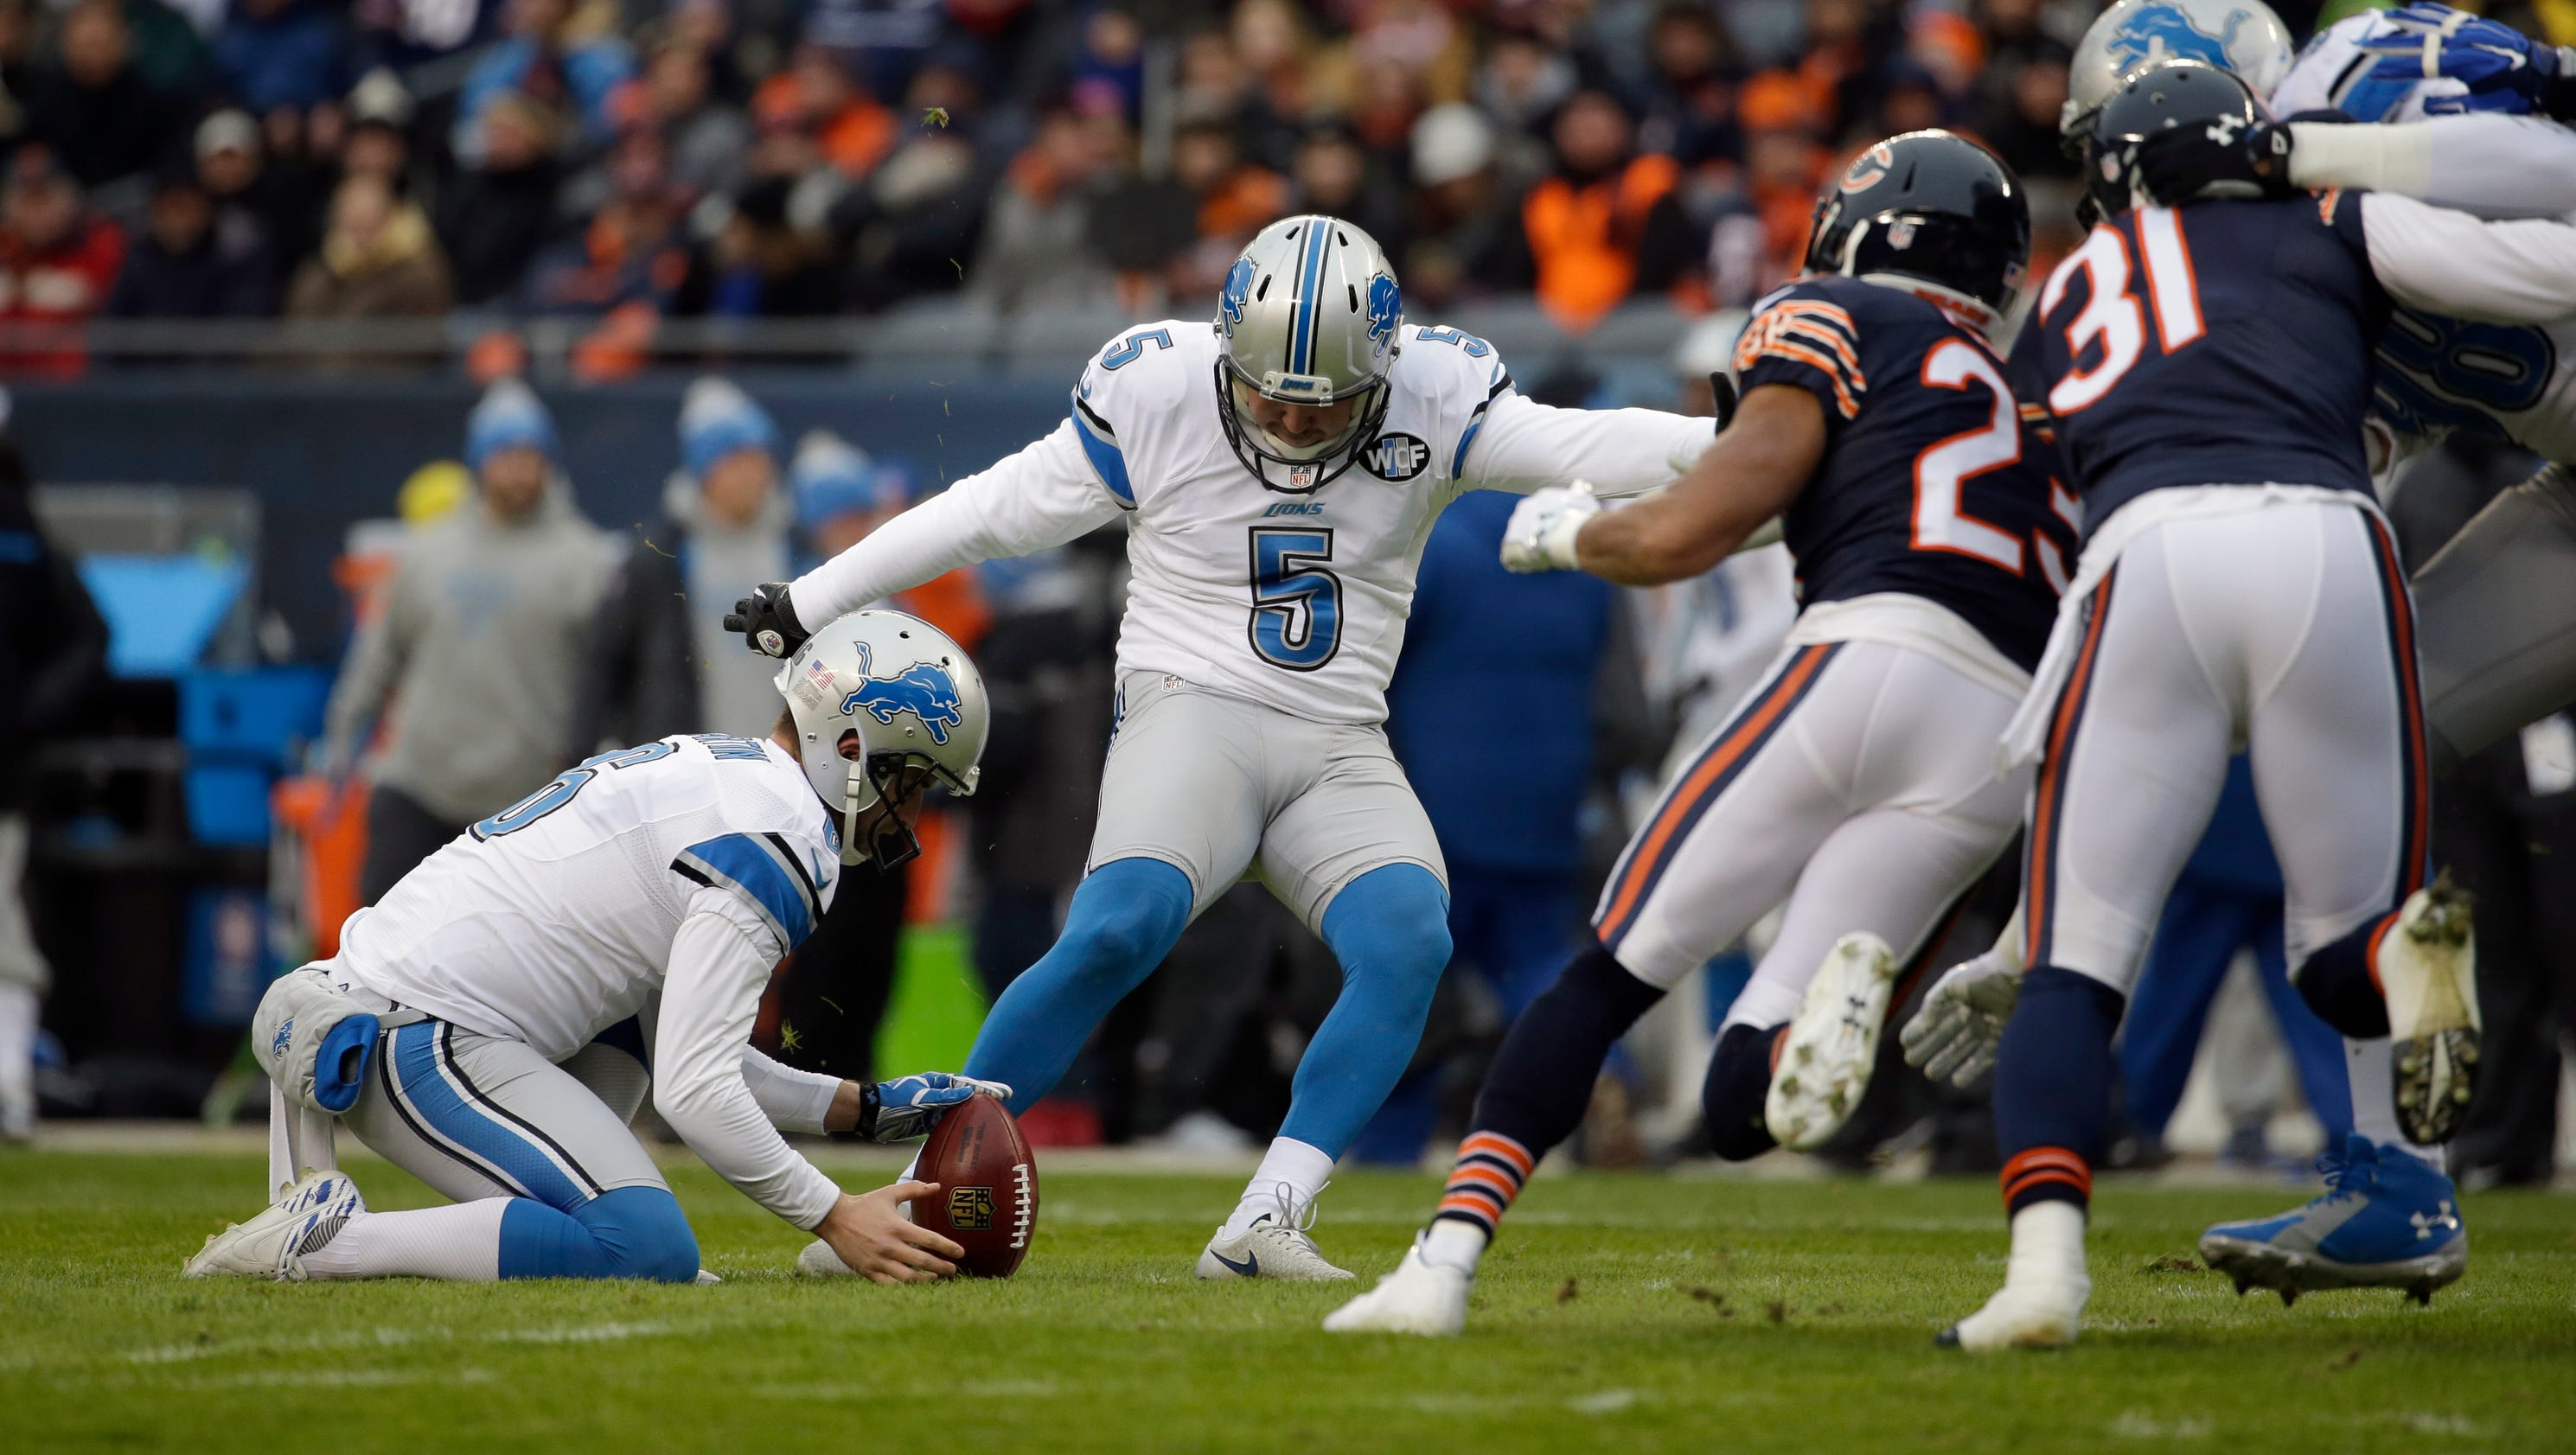 635874283699236909-ap-lions-bears-football-cxb-2-